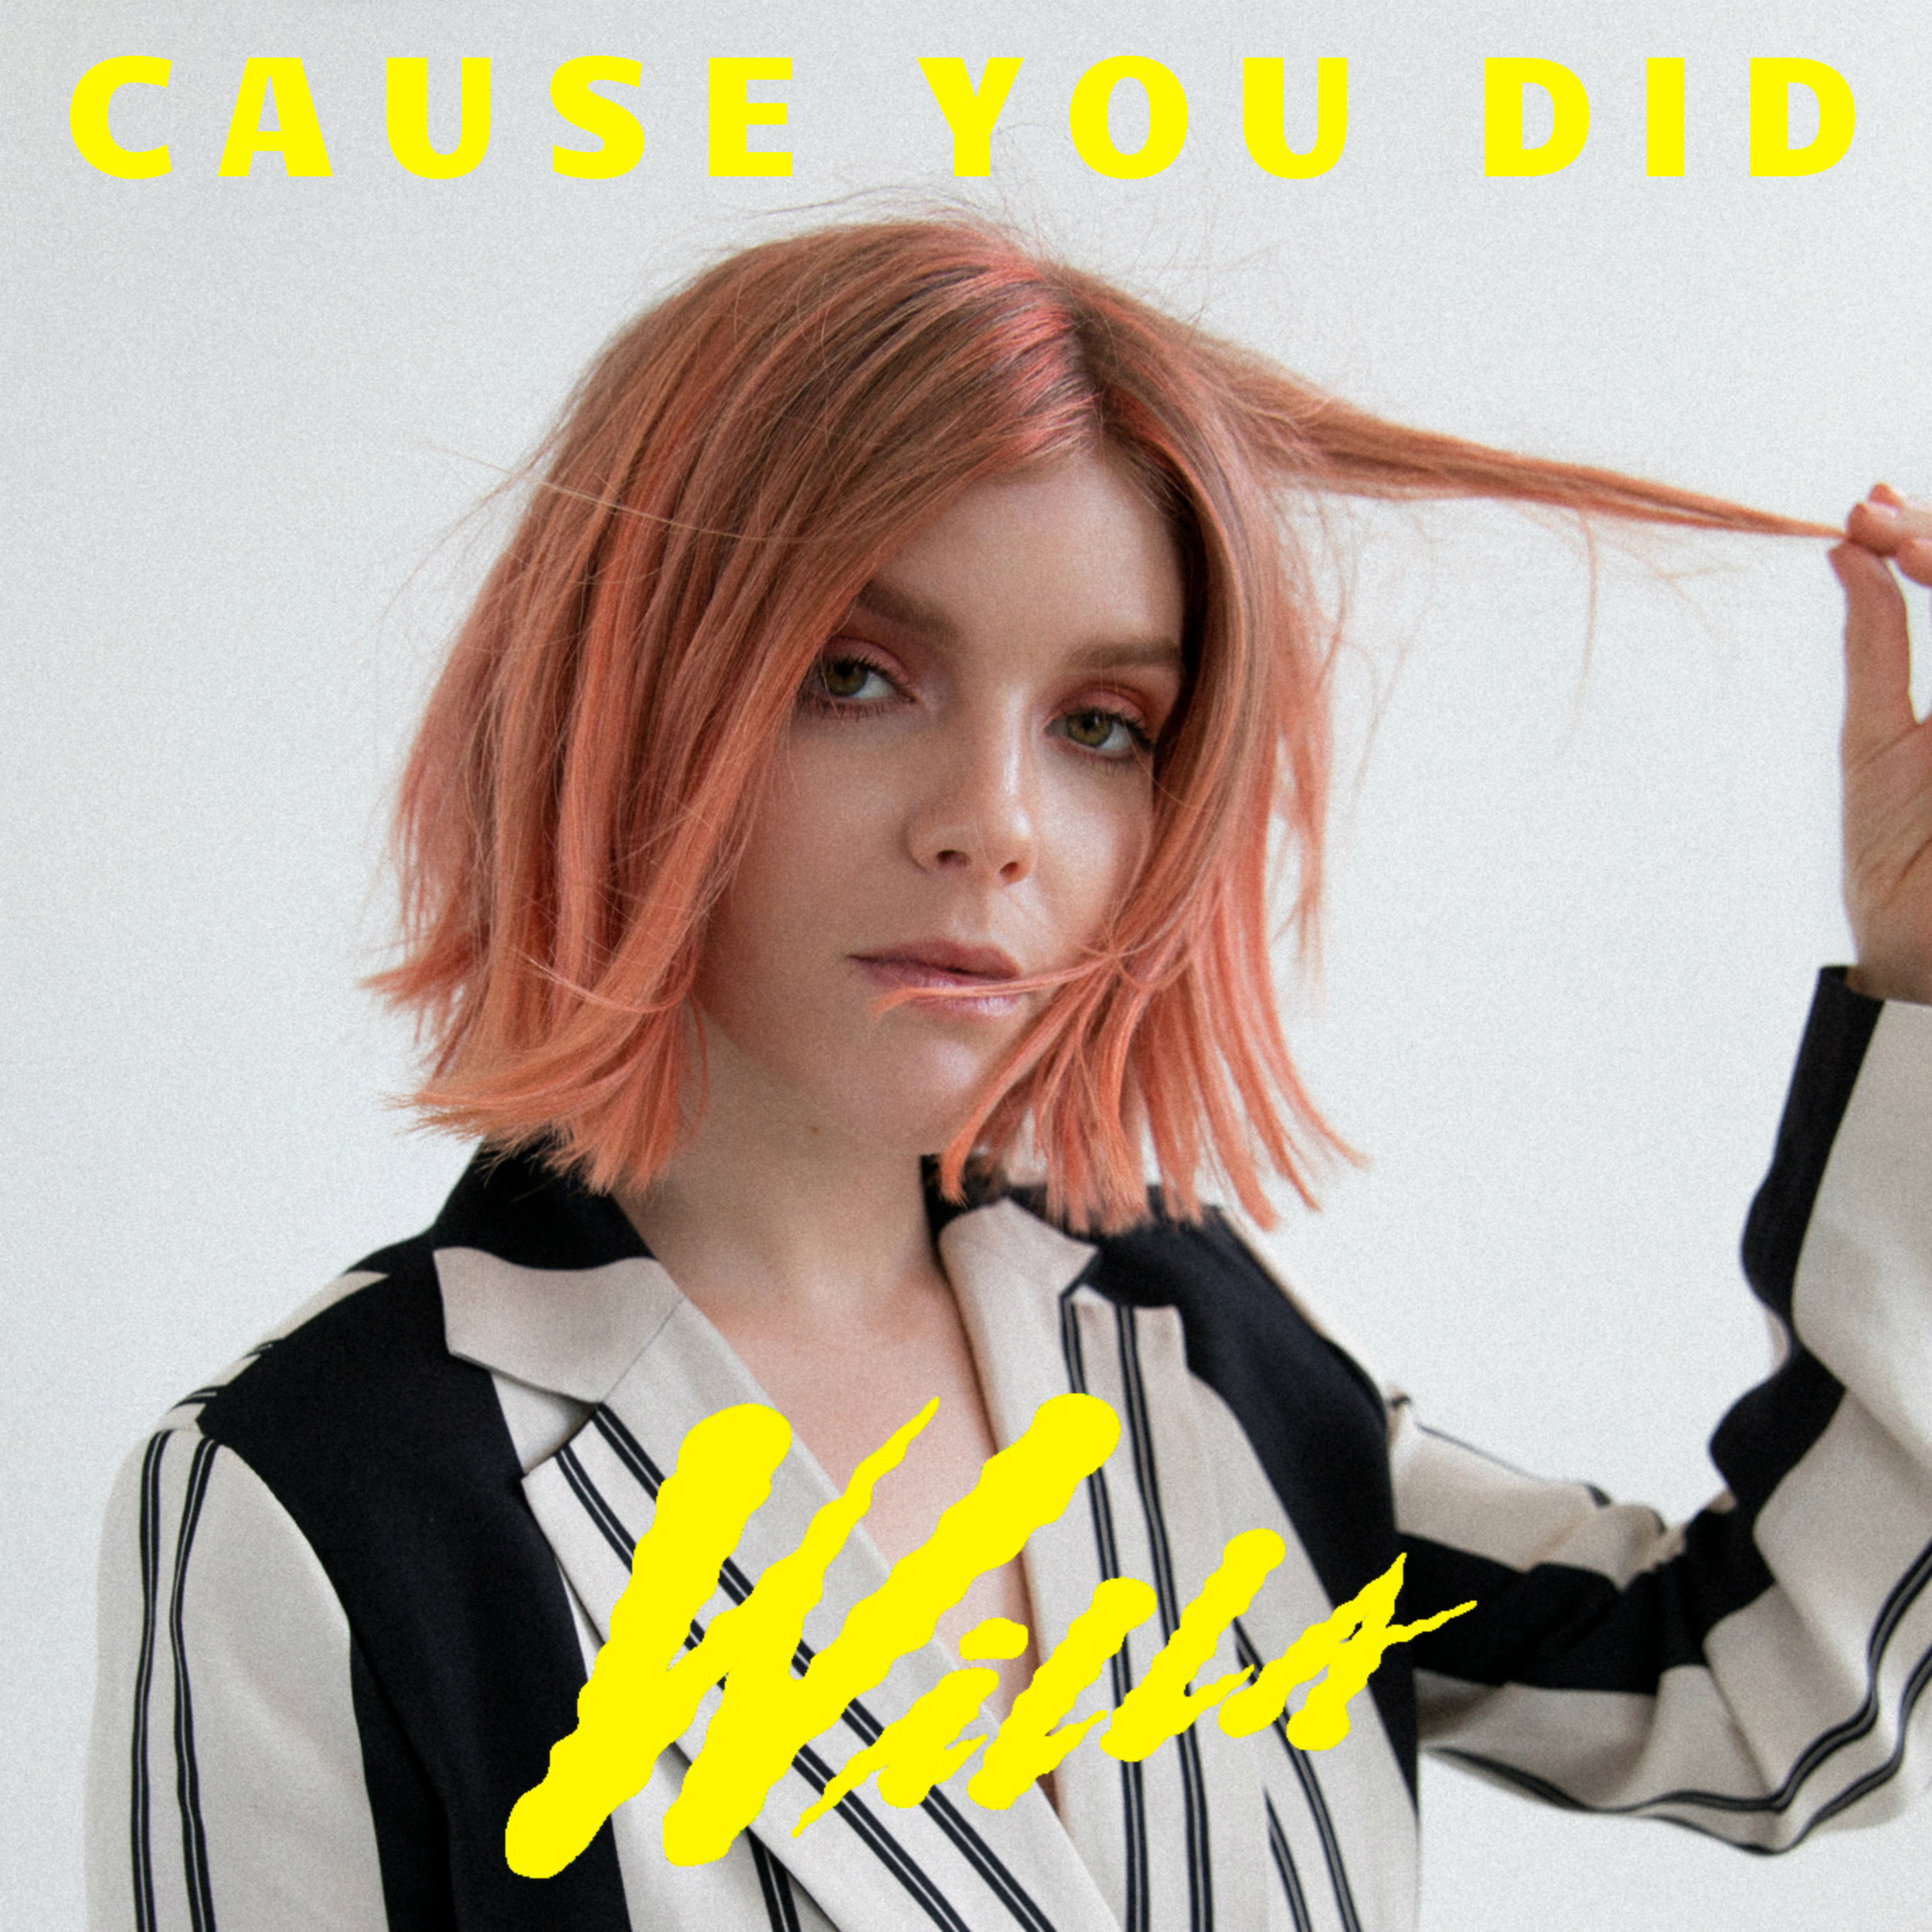 Willa - Cause You Did.jpg